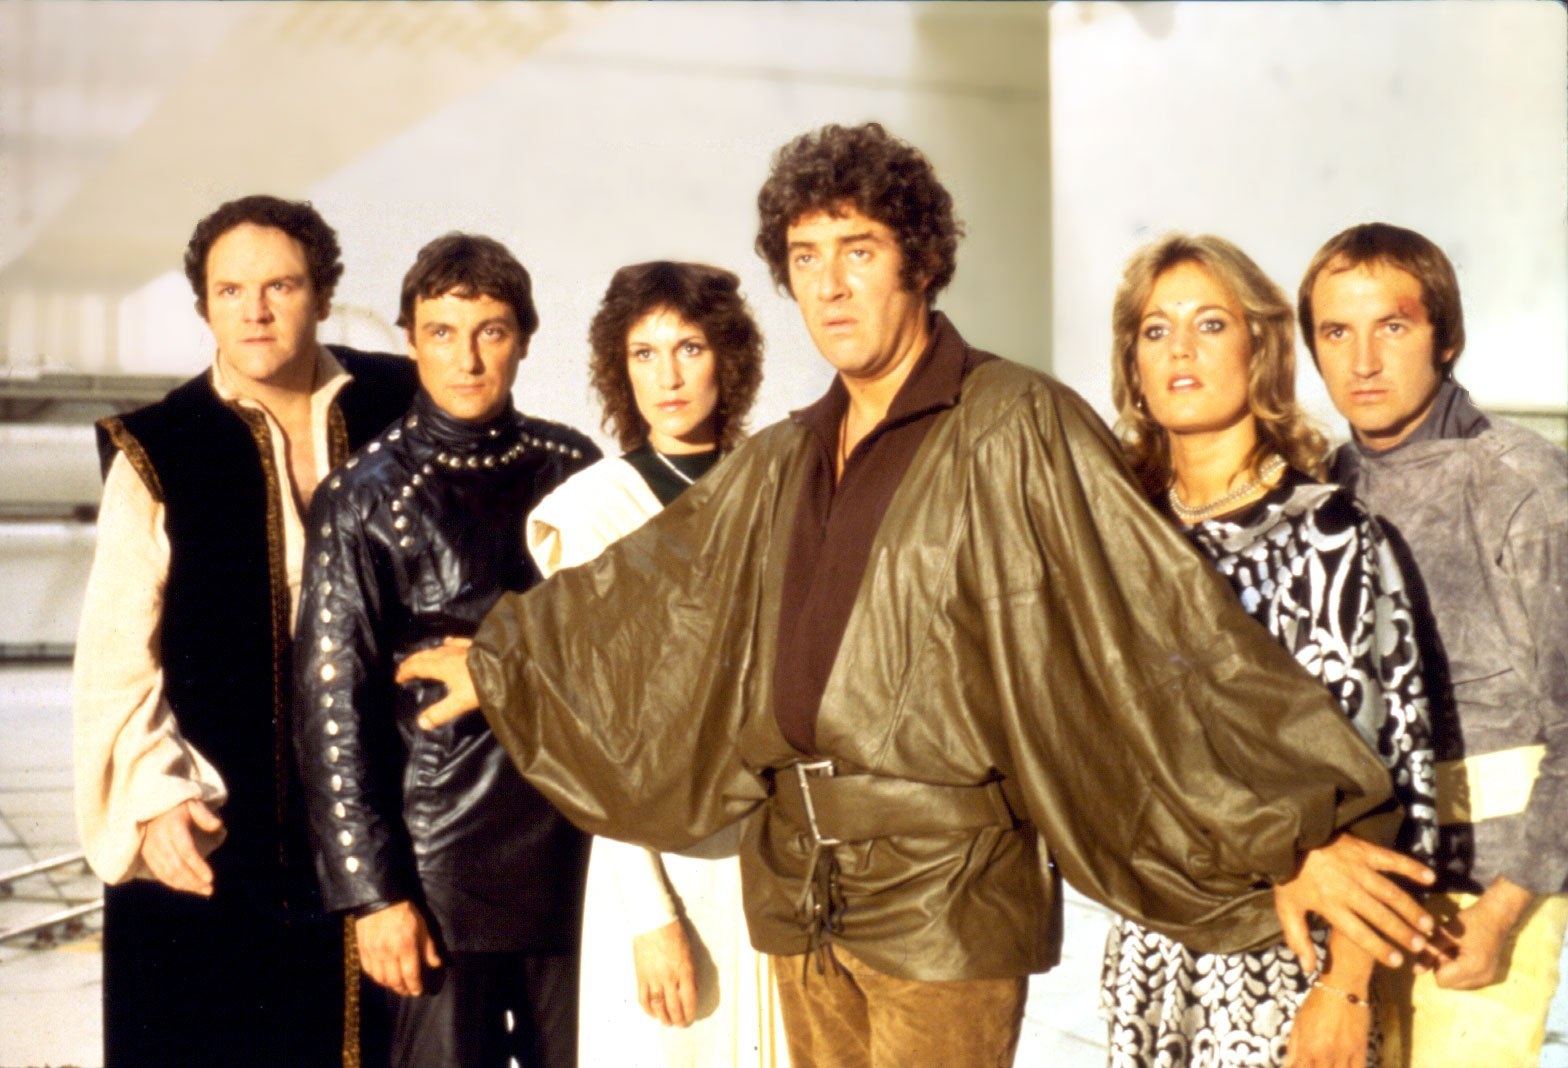 blakes 7 Blake's 7: 10 Things You Never Knew About The Classic Sci-Fi TV Show